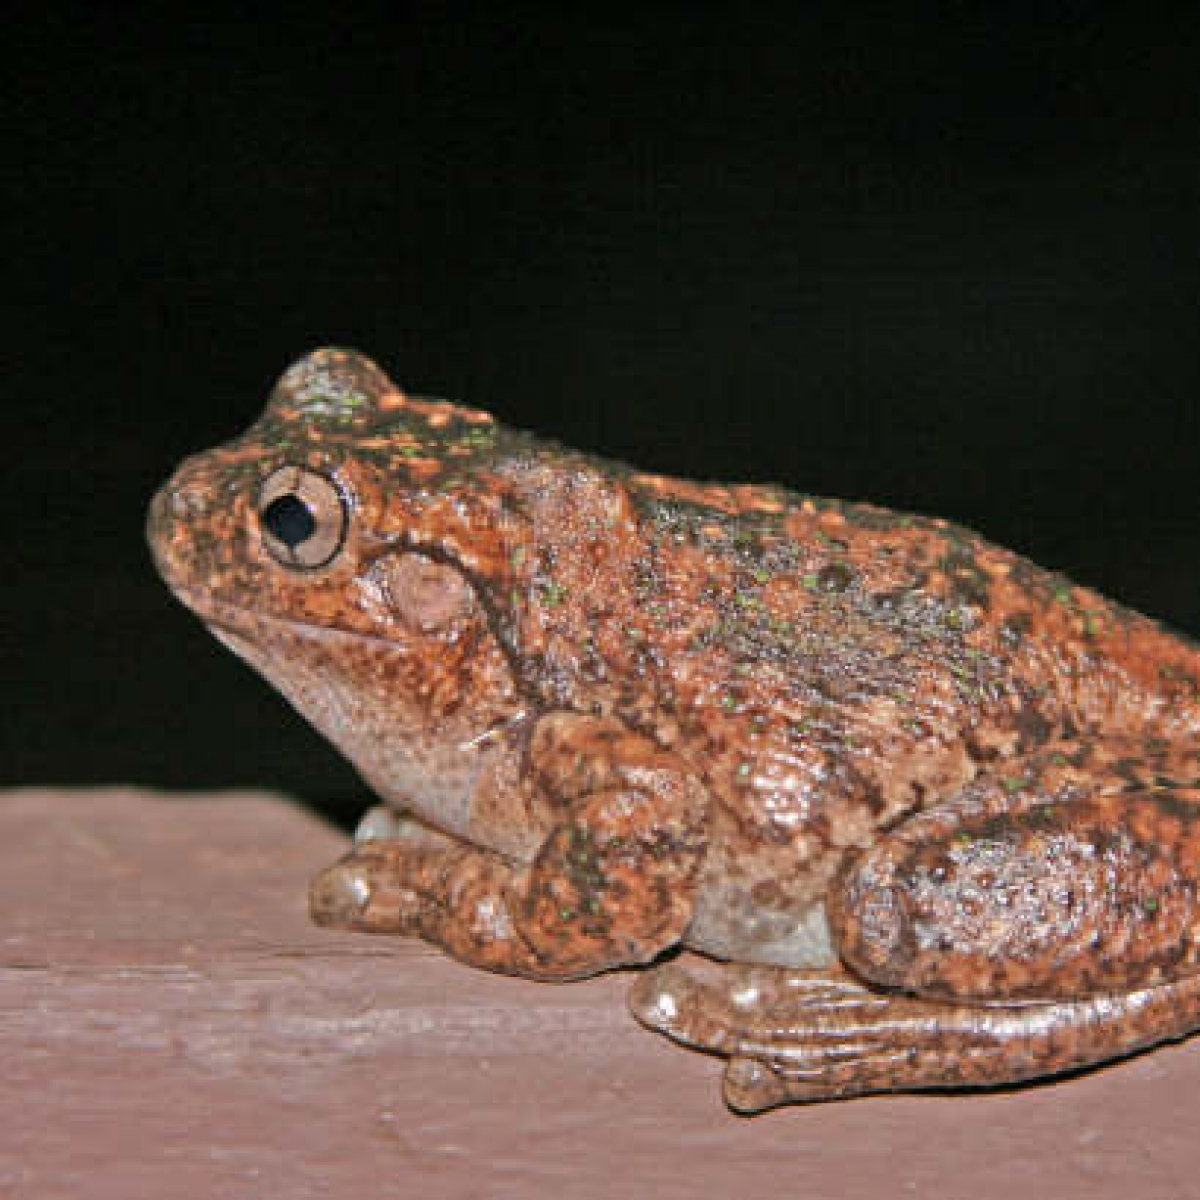 Peron's Tree Frog #2